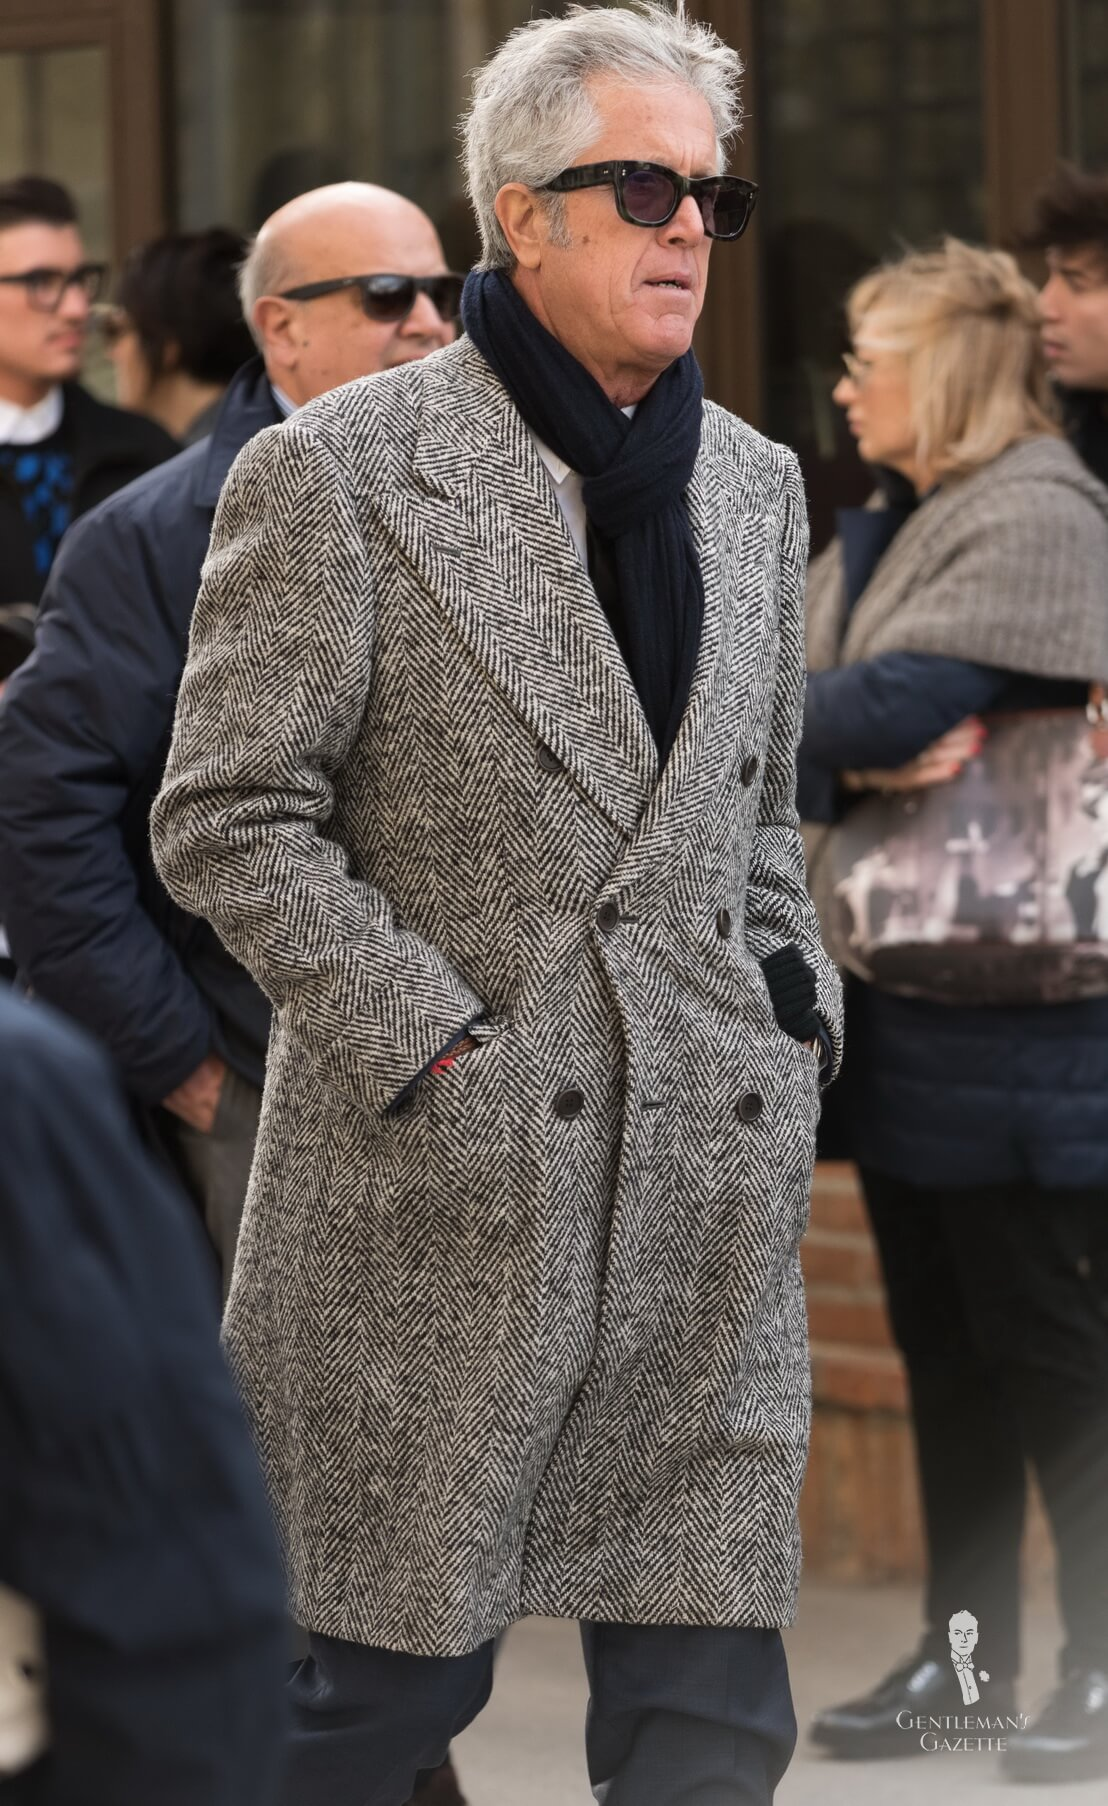 Classic-Double-Breasted-Herringbone-Overcoat-with-dark-scarf.jpg